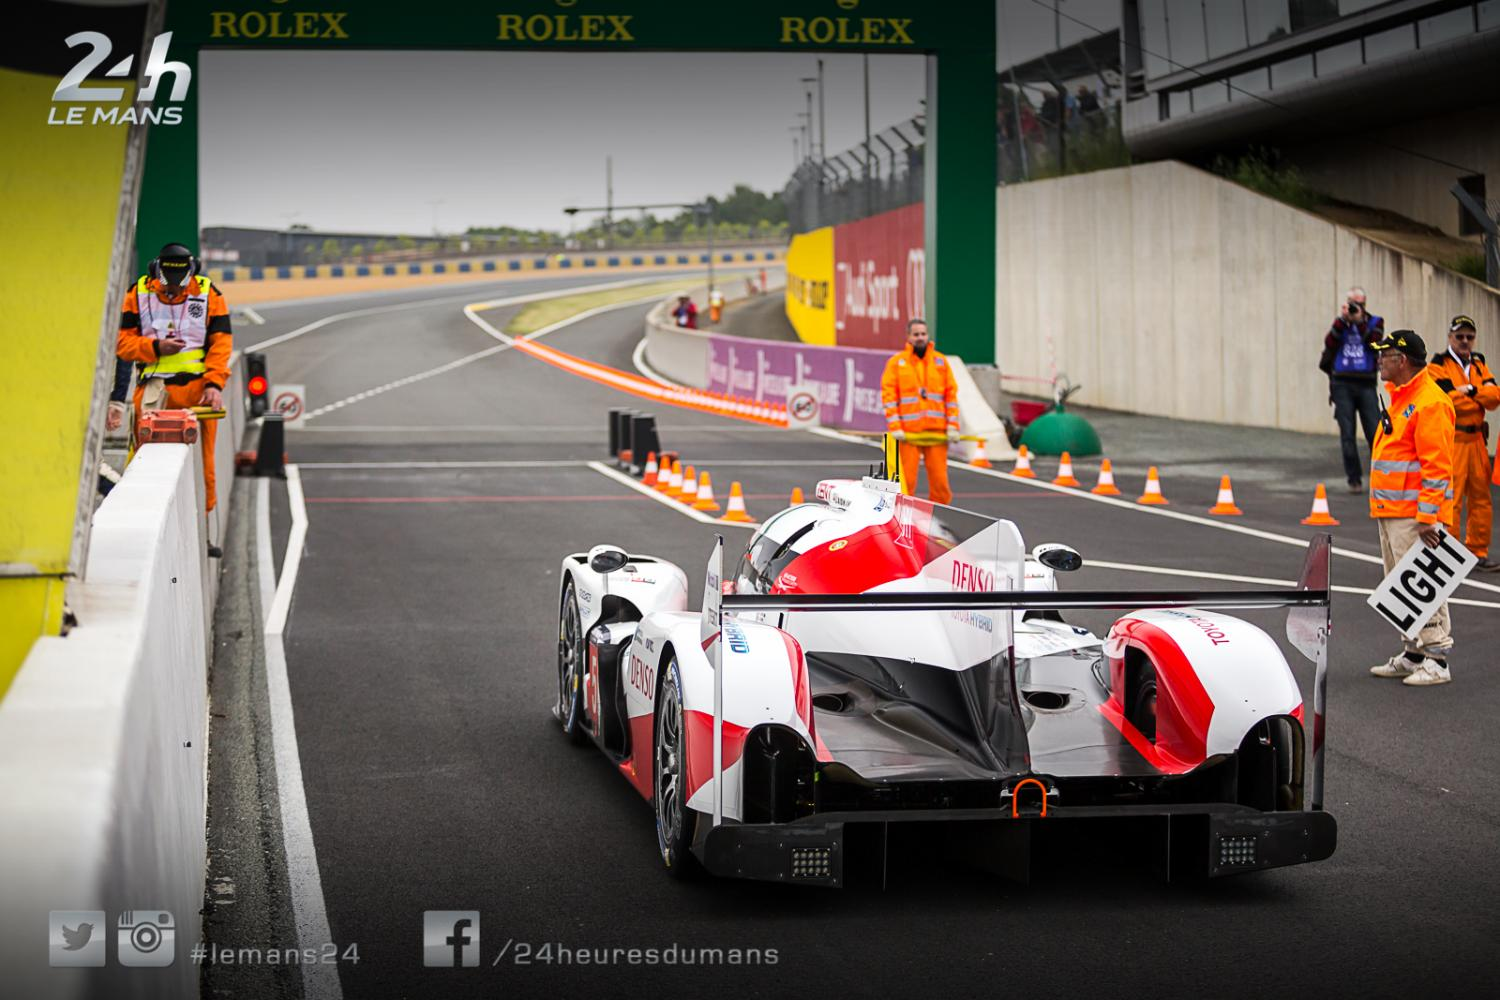 24 Hours of Le Mans - Test Day is under way